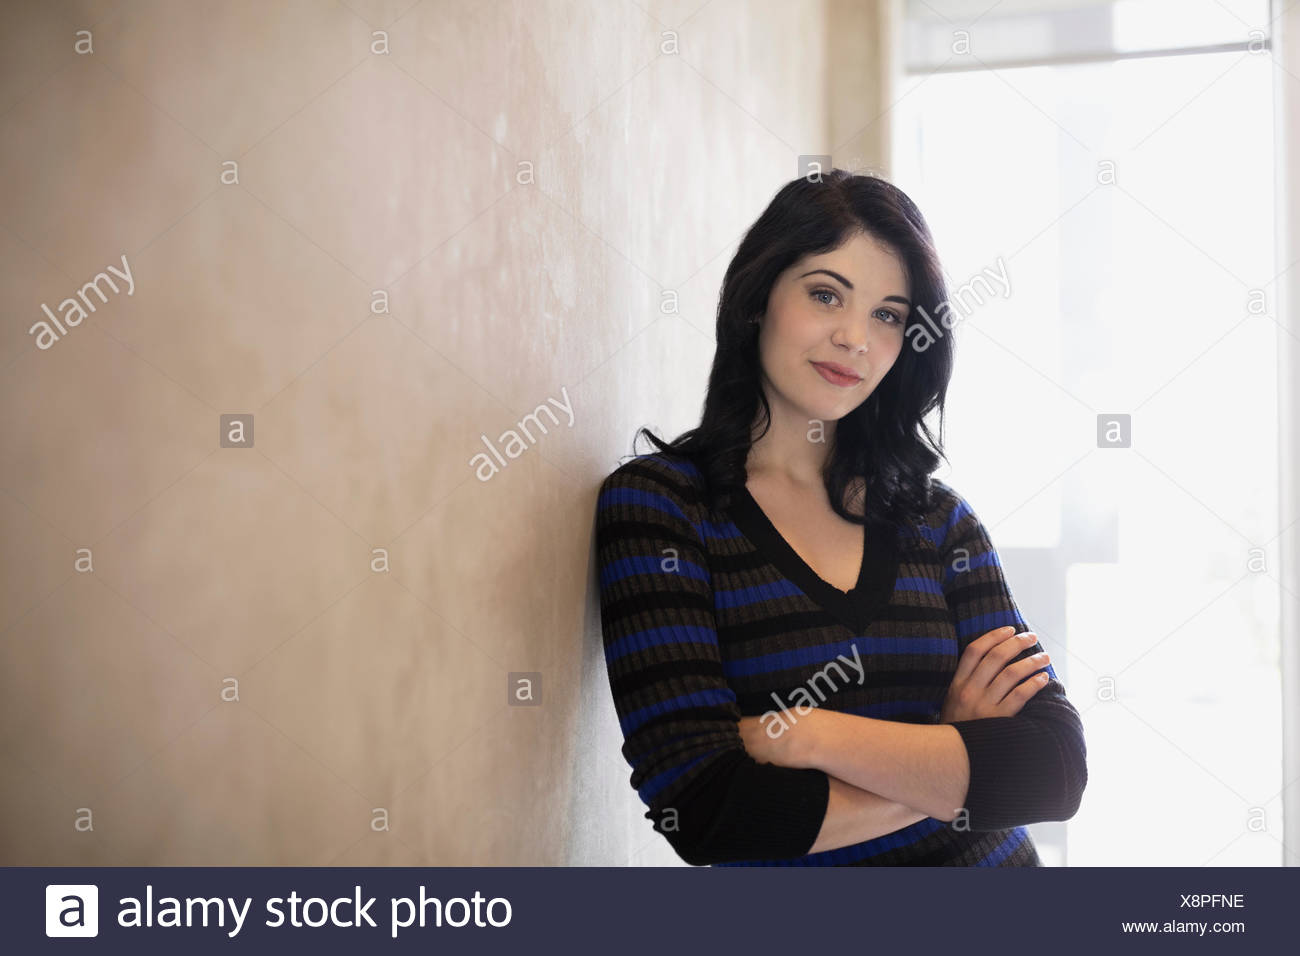 Portrait woman with arms crossed leaning wall Photo Stock